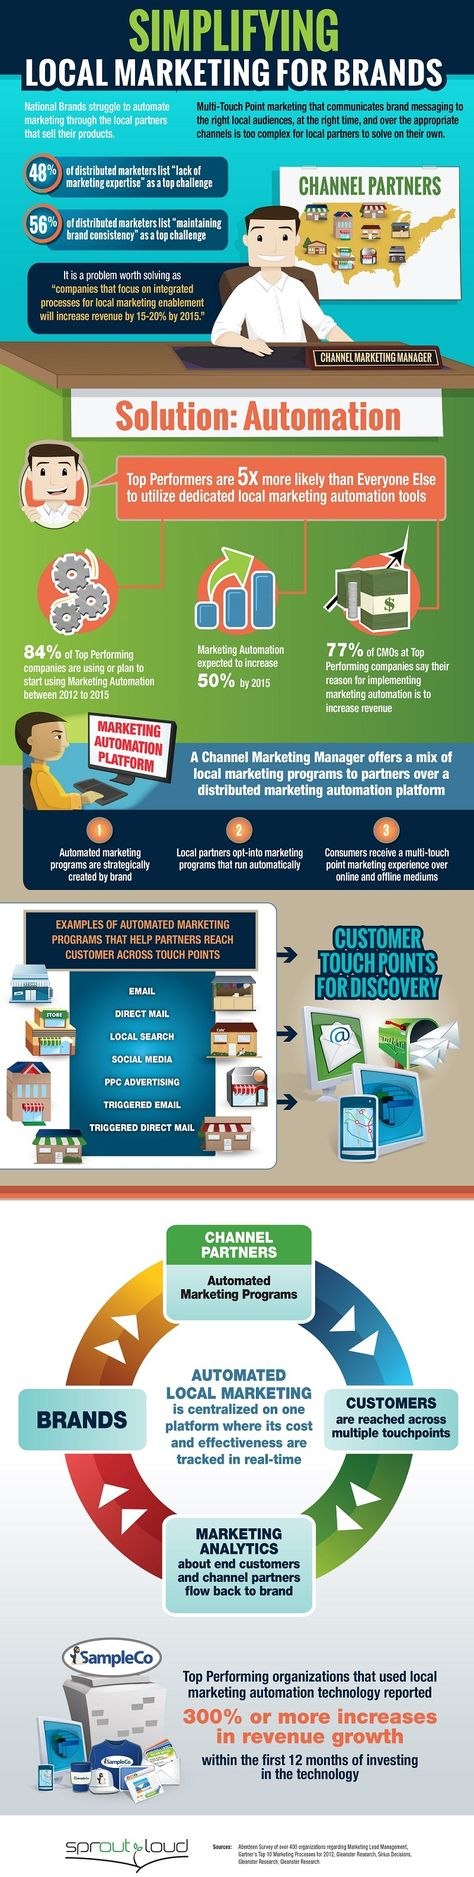 Simplifying Local Marketing for National Brands via Automation [Infographic]